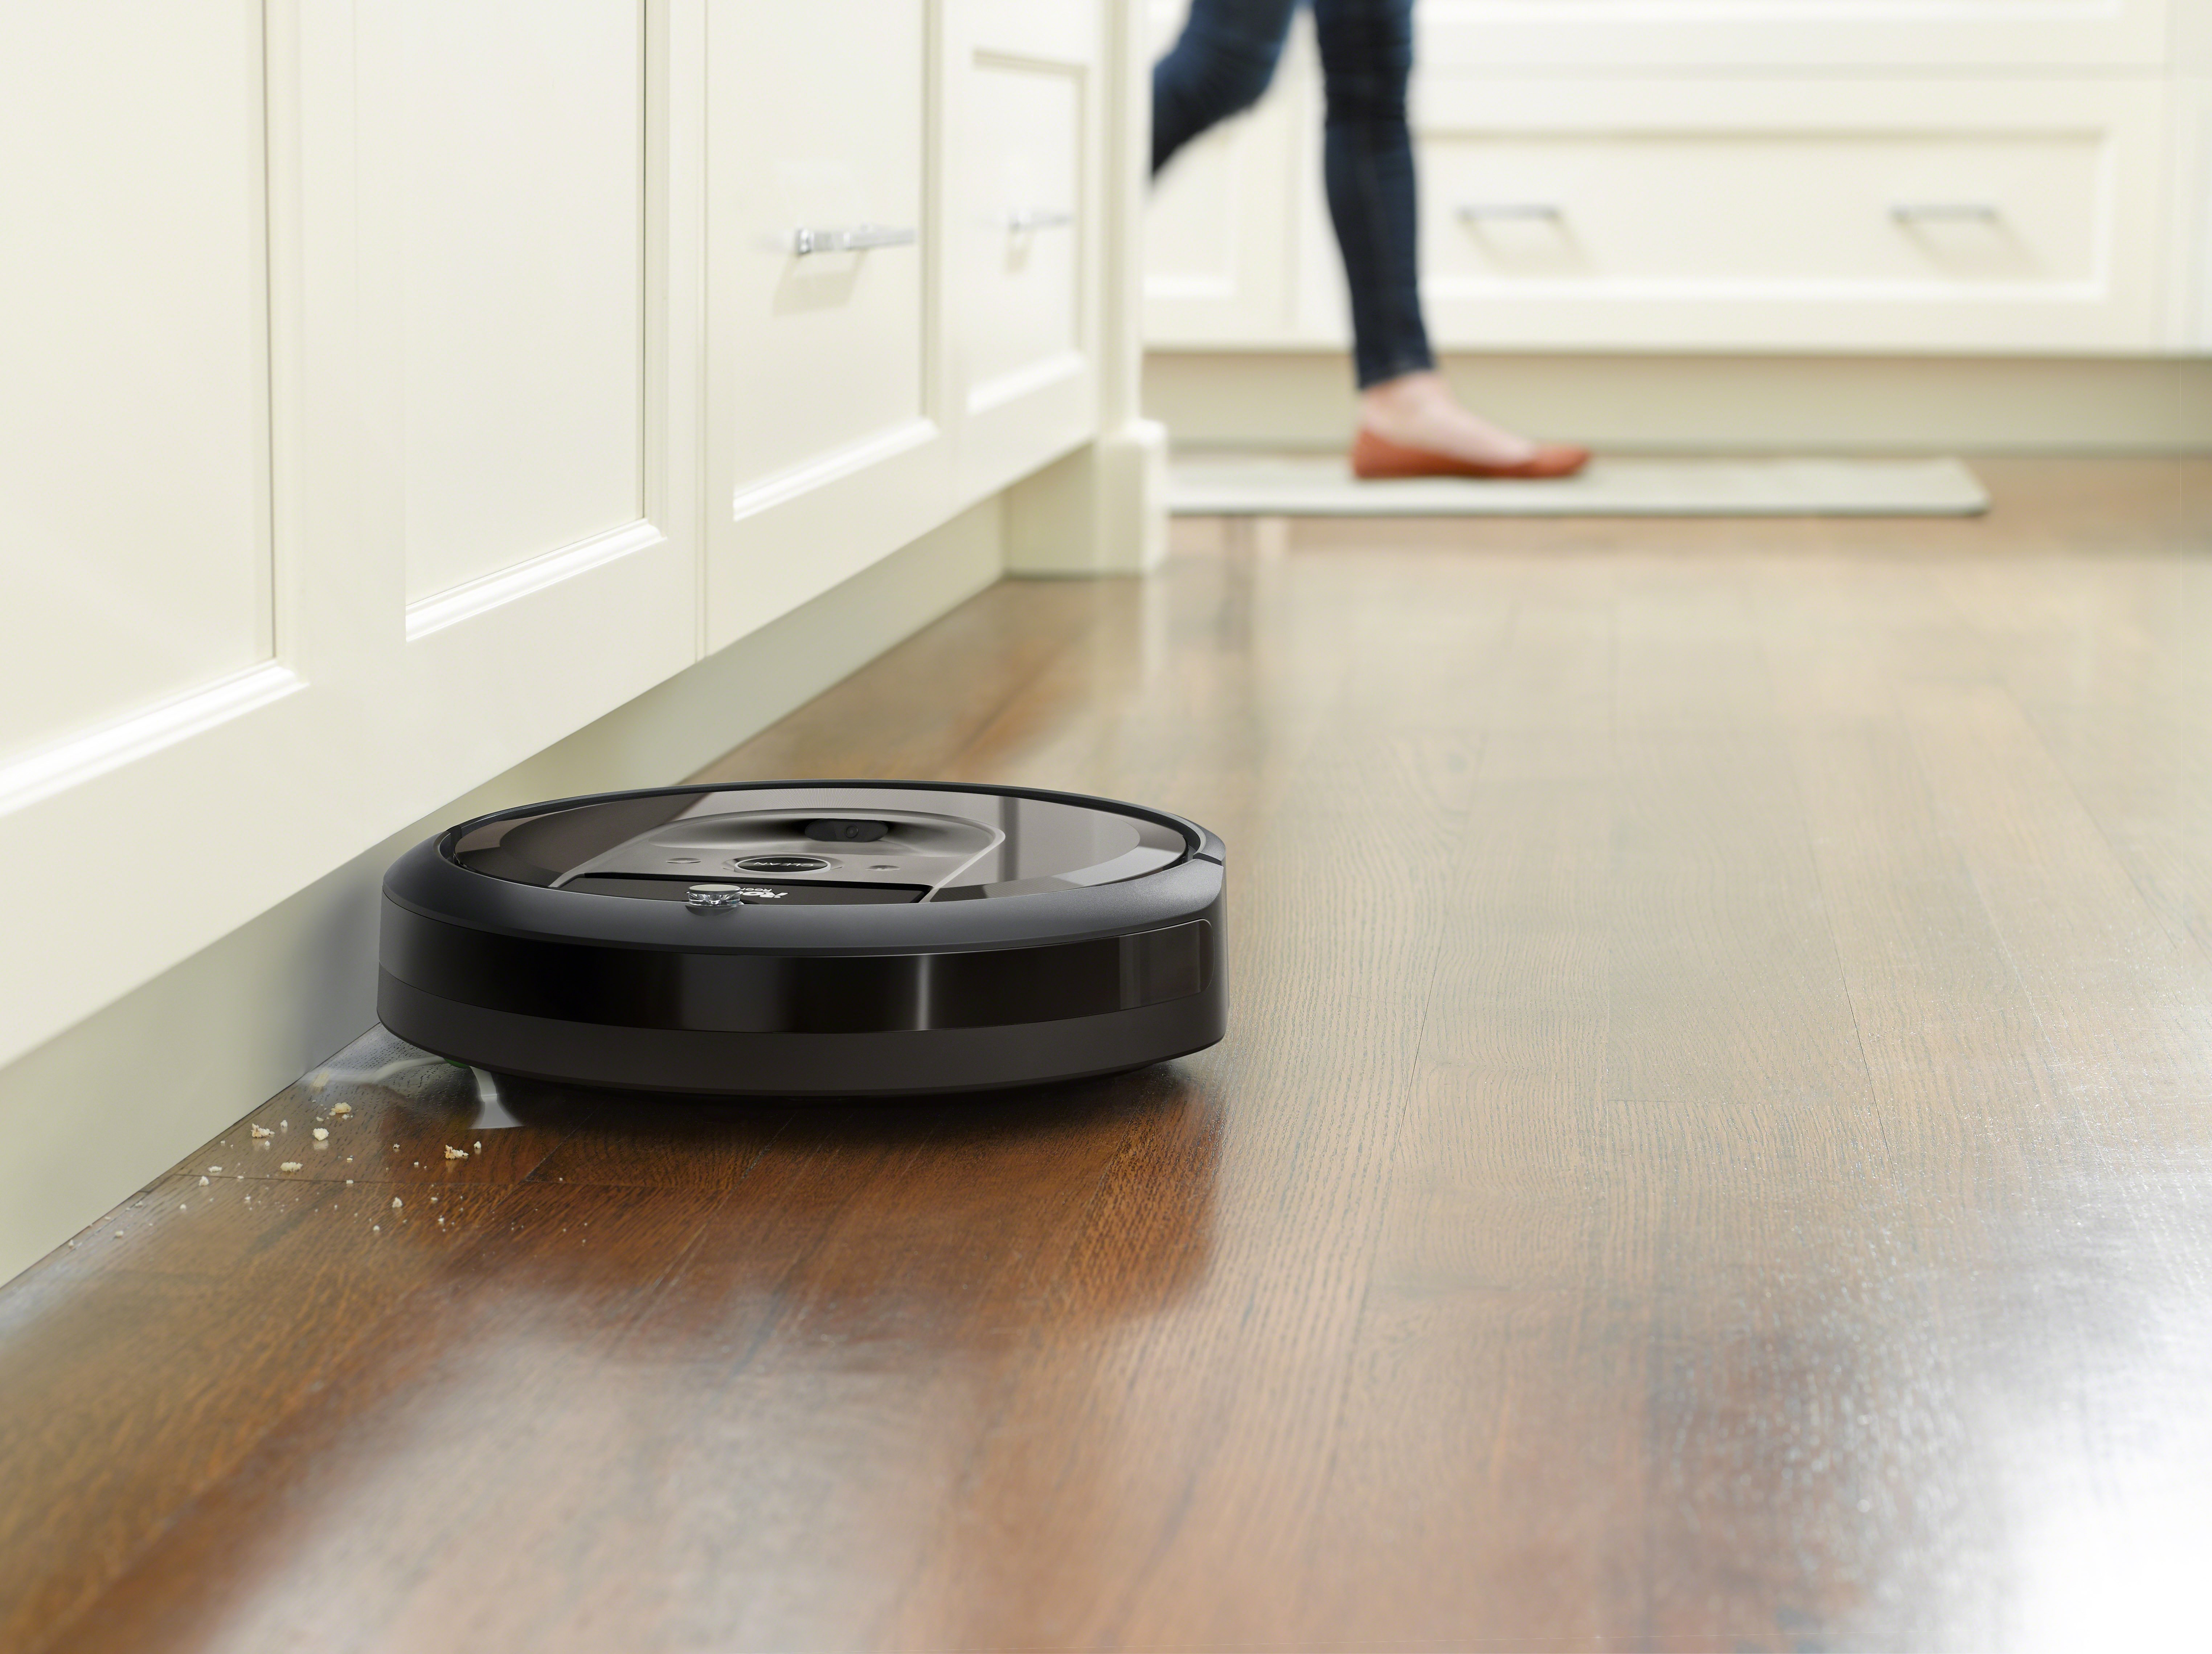 iRobot's latest Roomba remembers your home's layout and empties